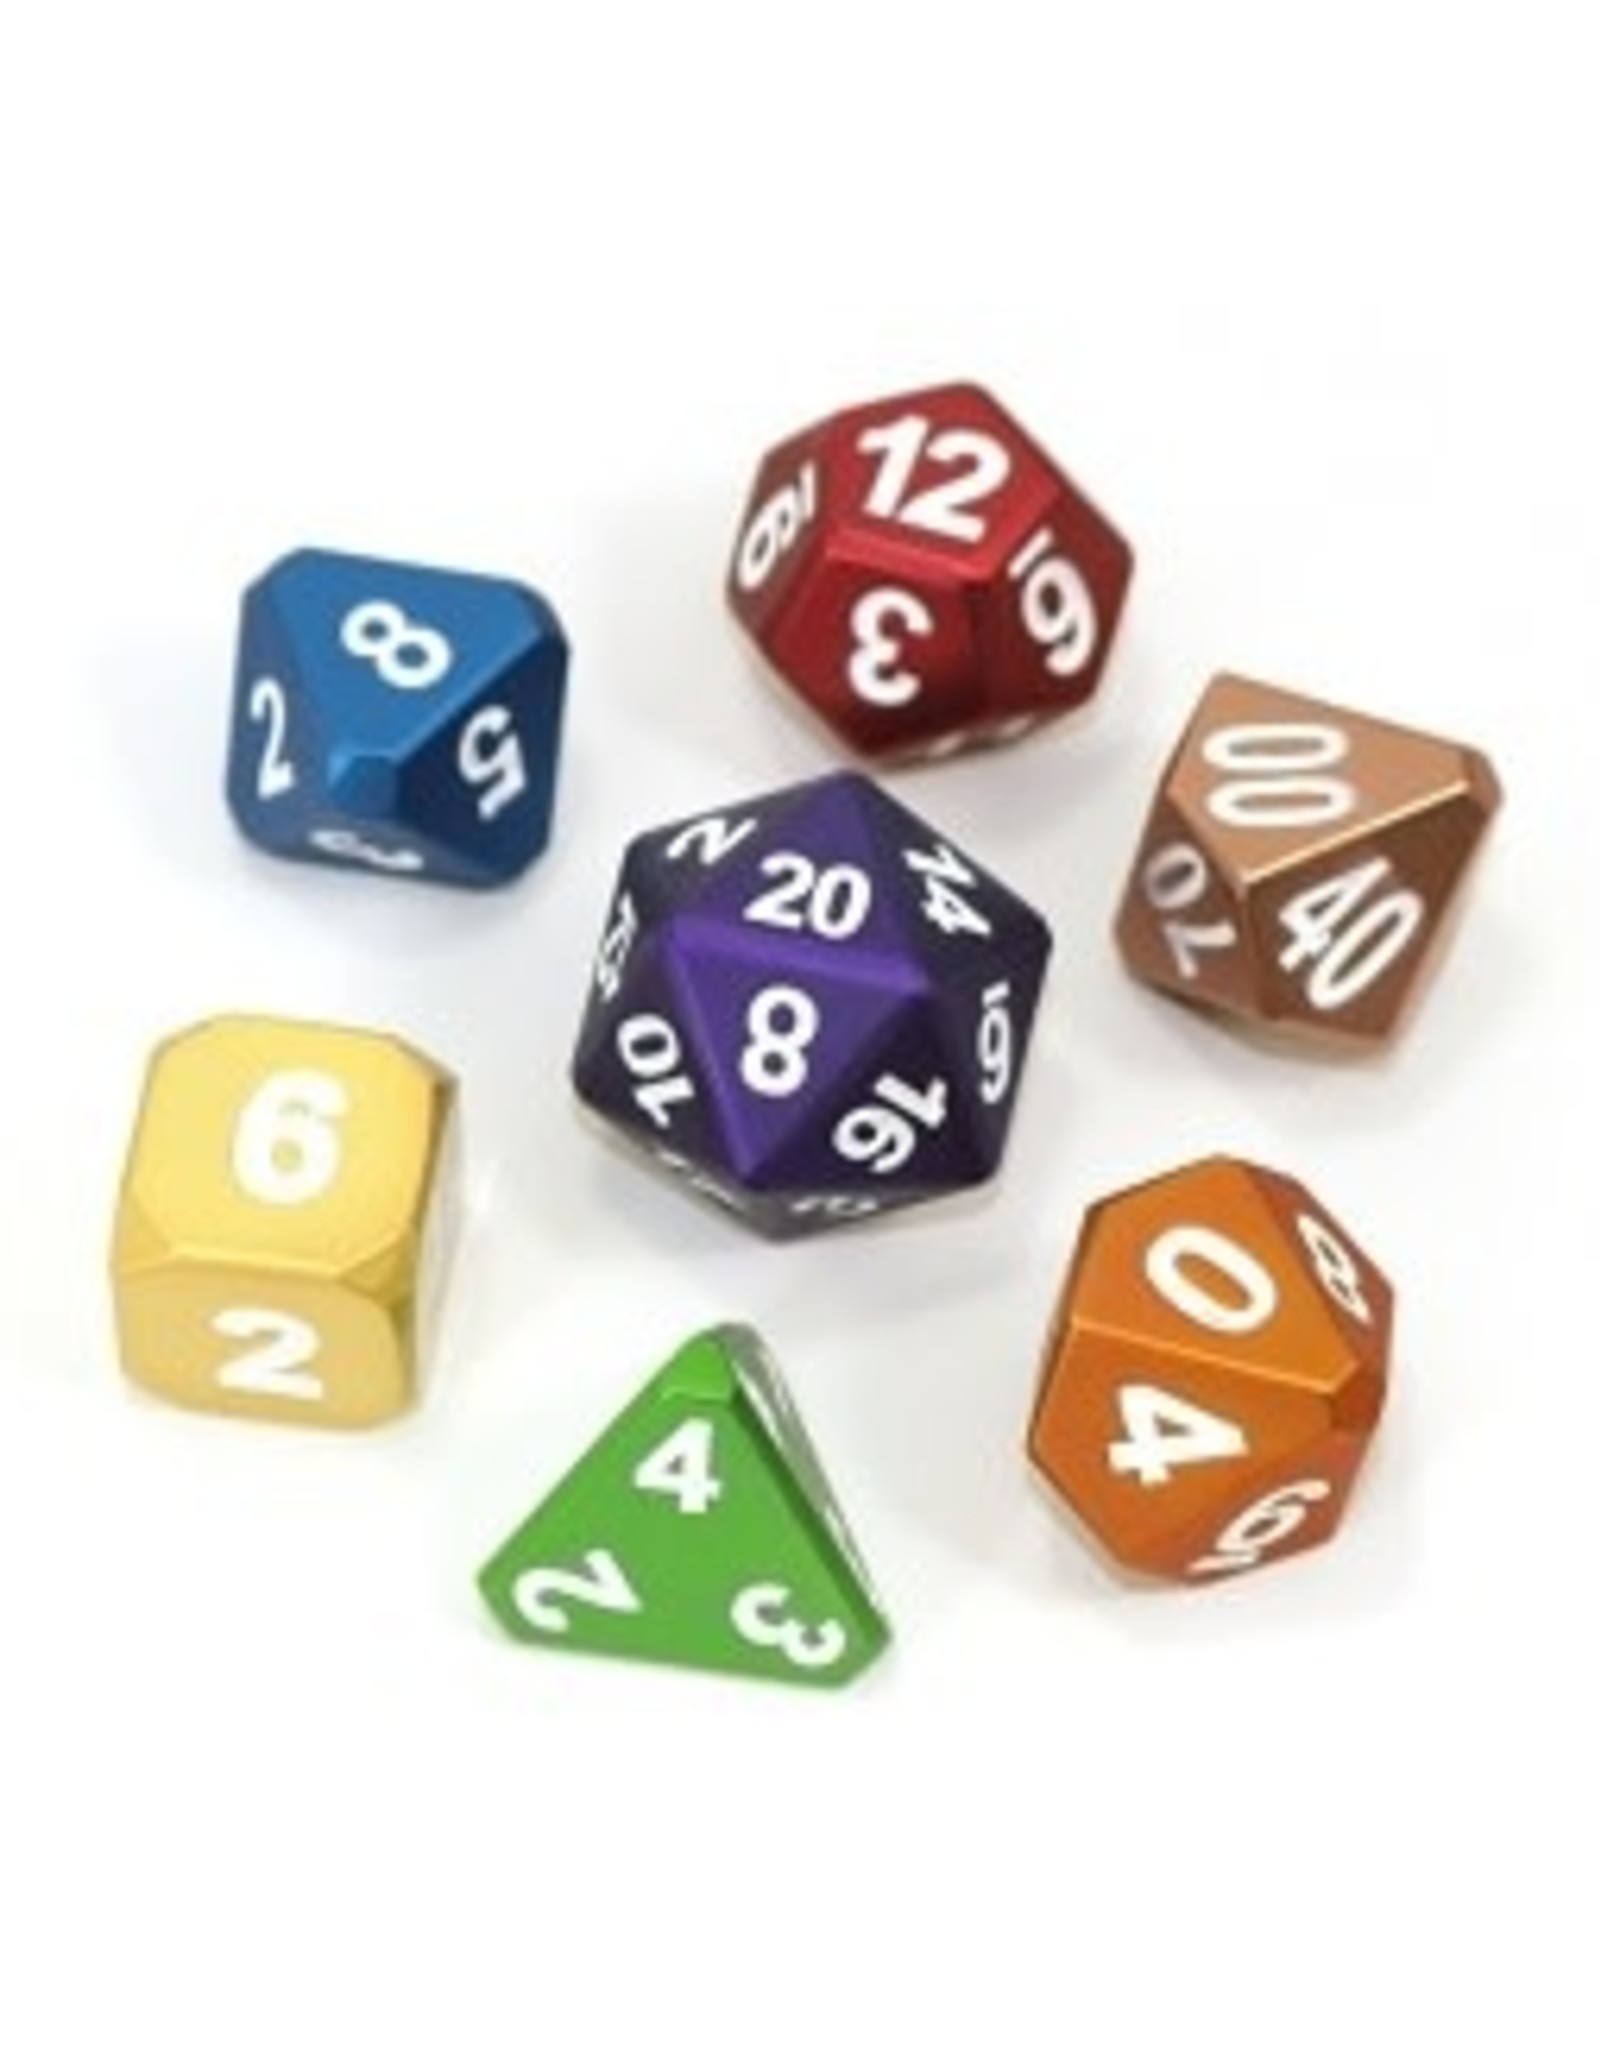 Die Hard Metal Forge Dice Set- Frosted Rainbow Mix